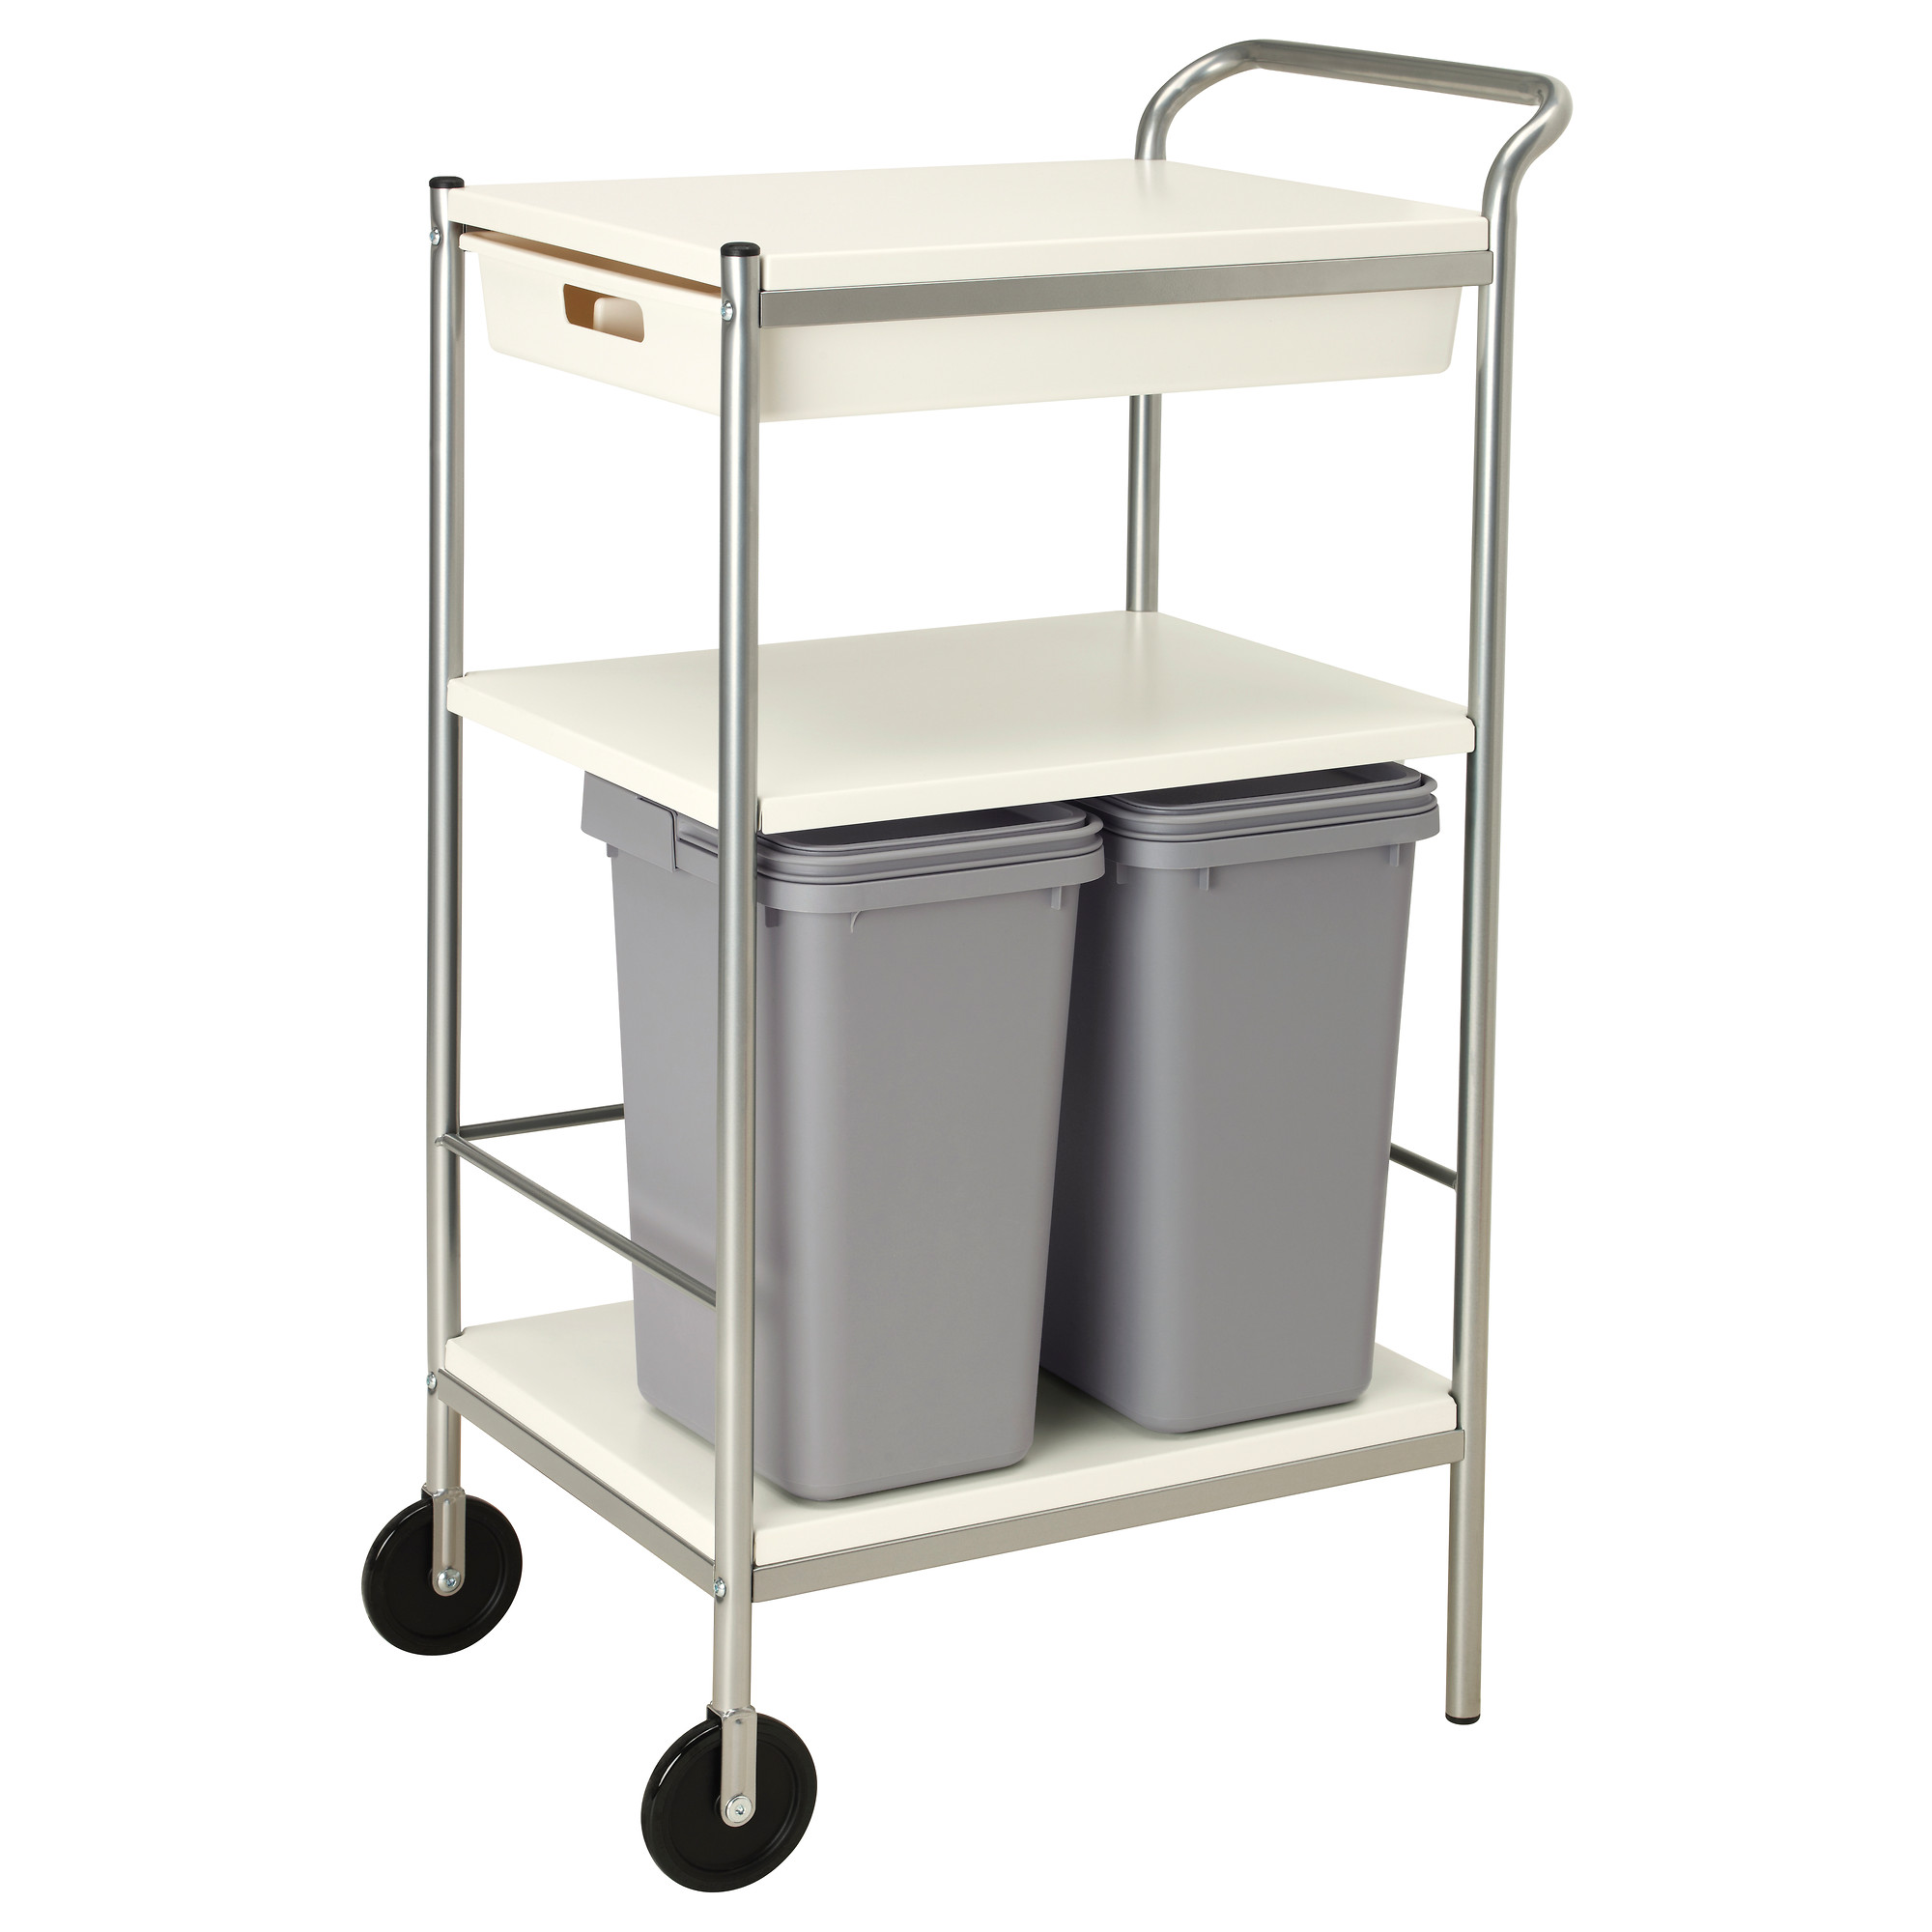 Ikea Kitchen Cart: Ikea Bygel Kitchen Utility Cart Island Organizer